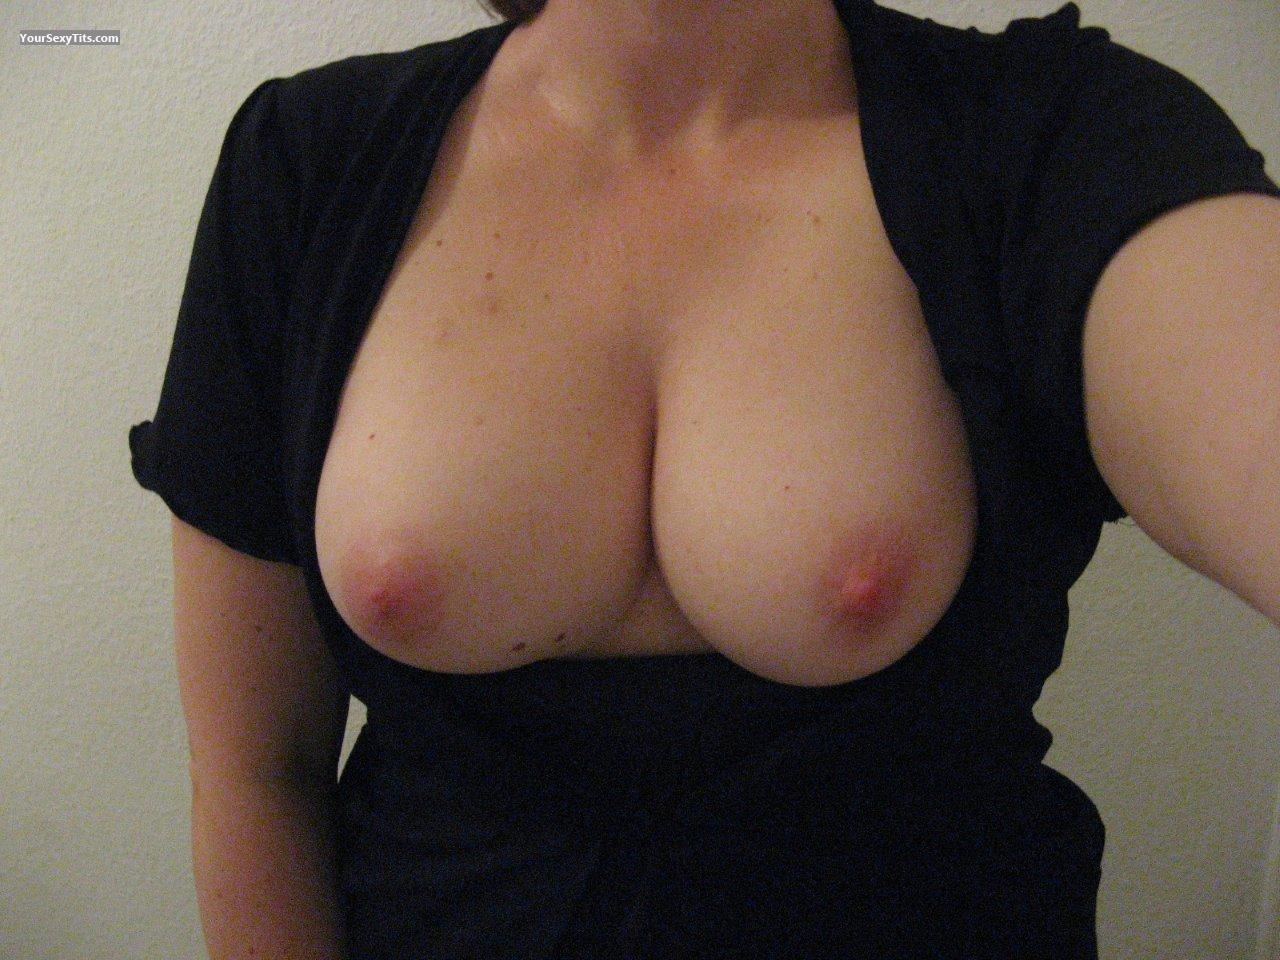 Tit Flash: My Medium Tits (Selfie) - Creamyme from United States